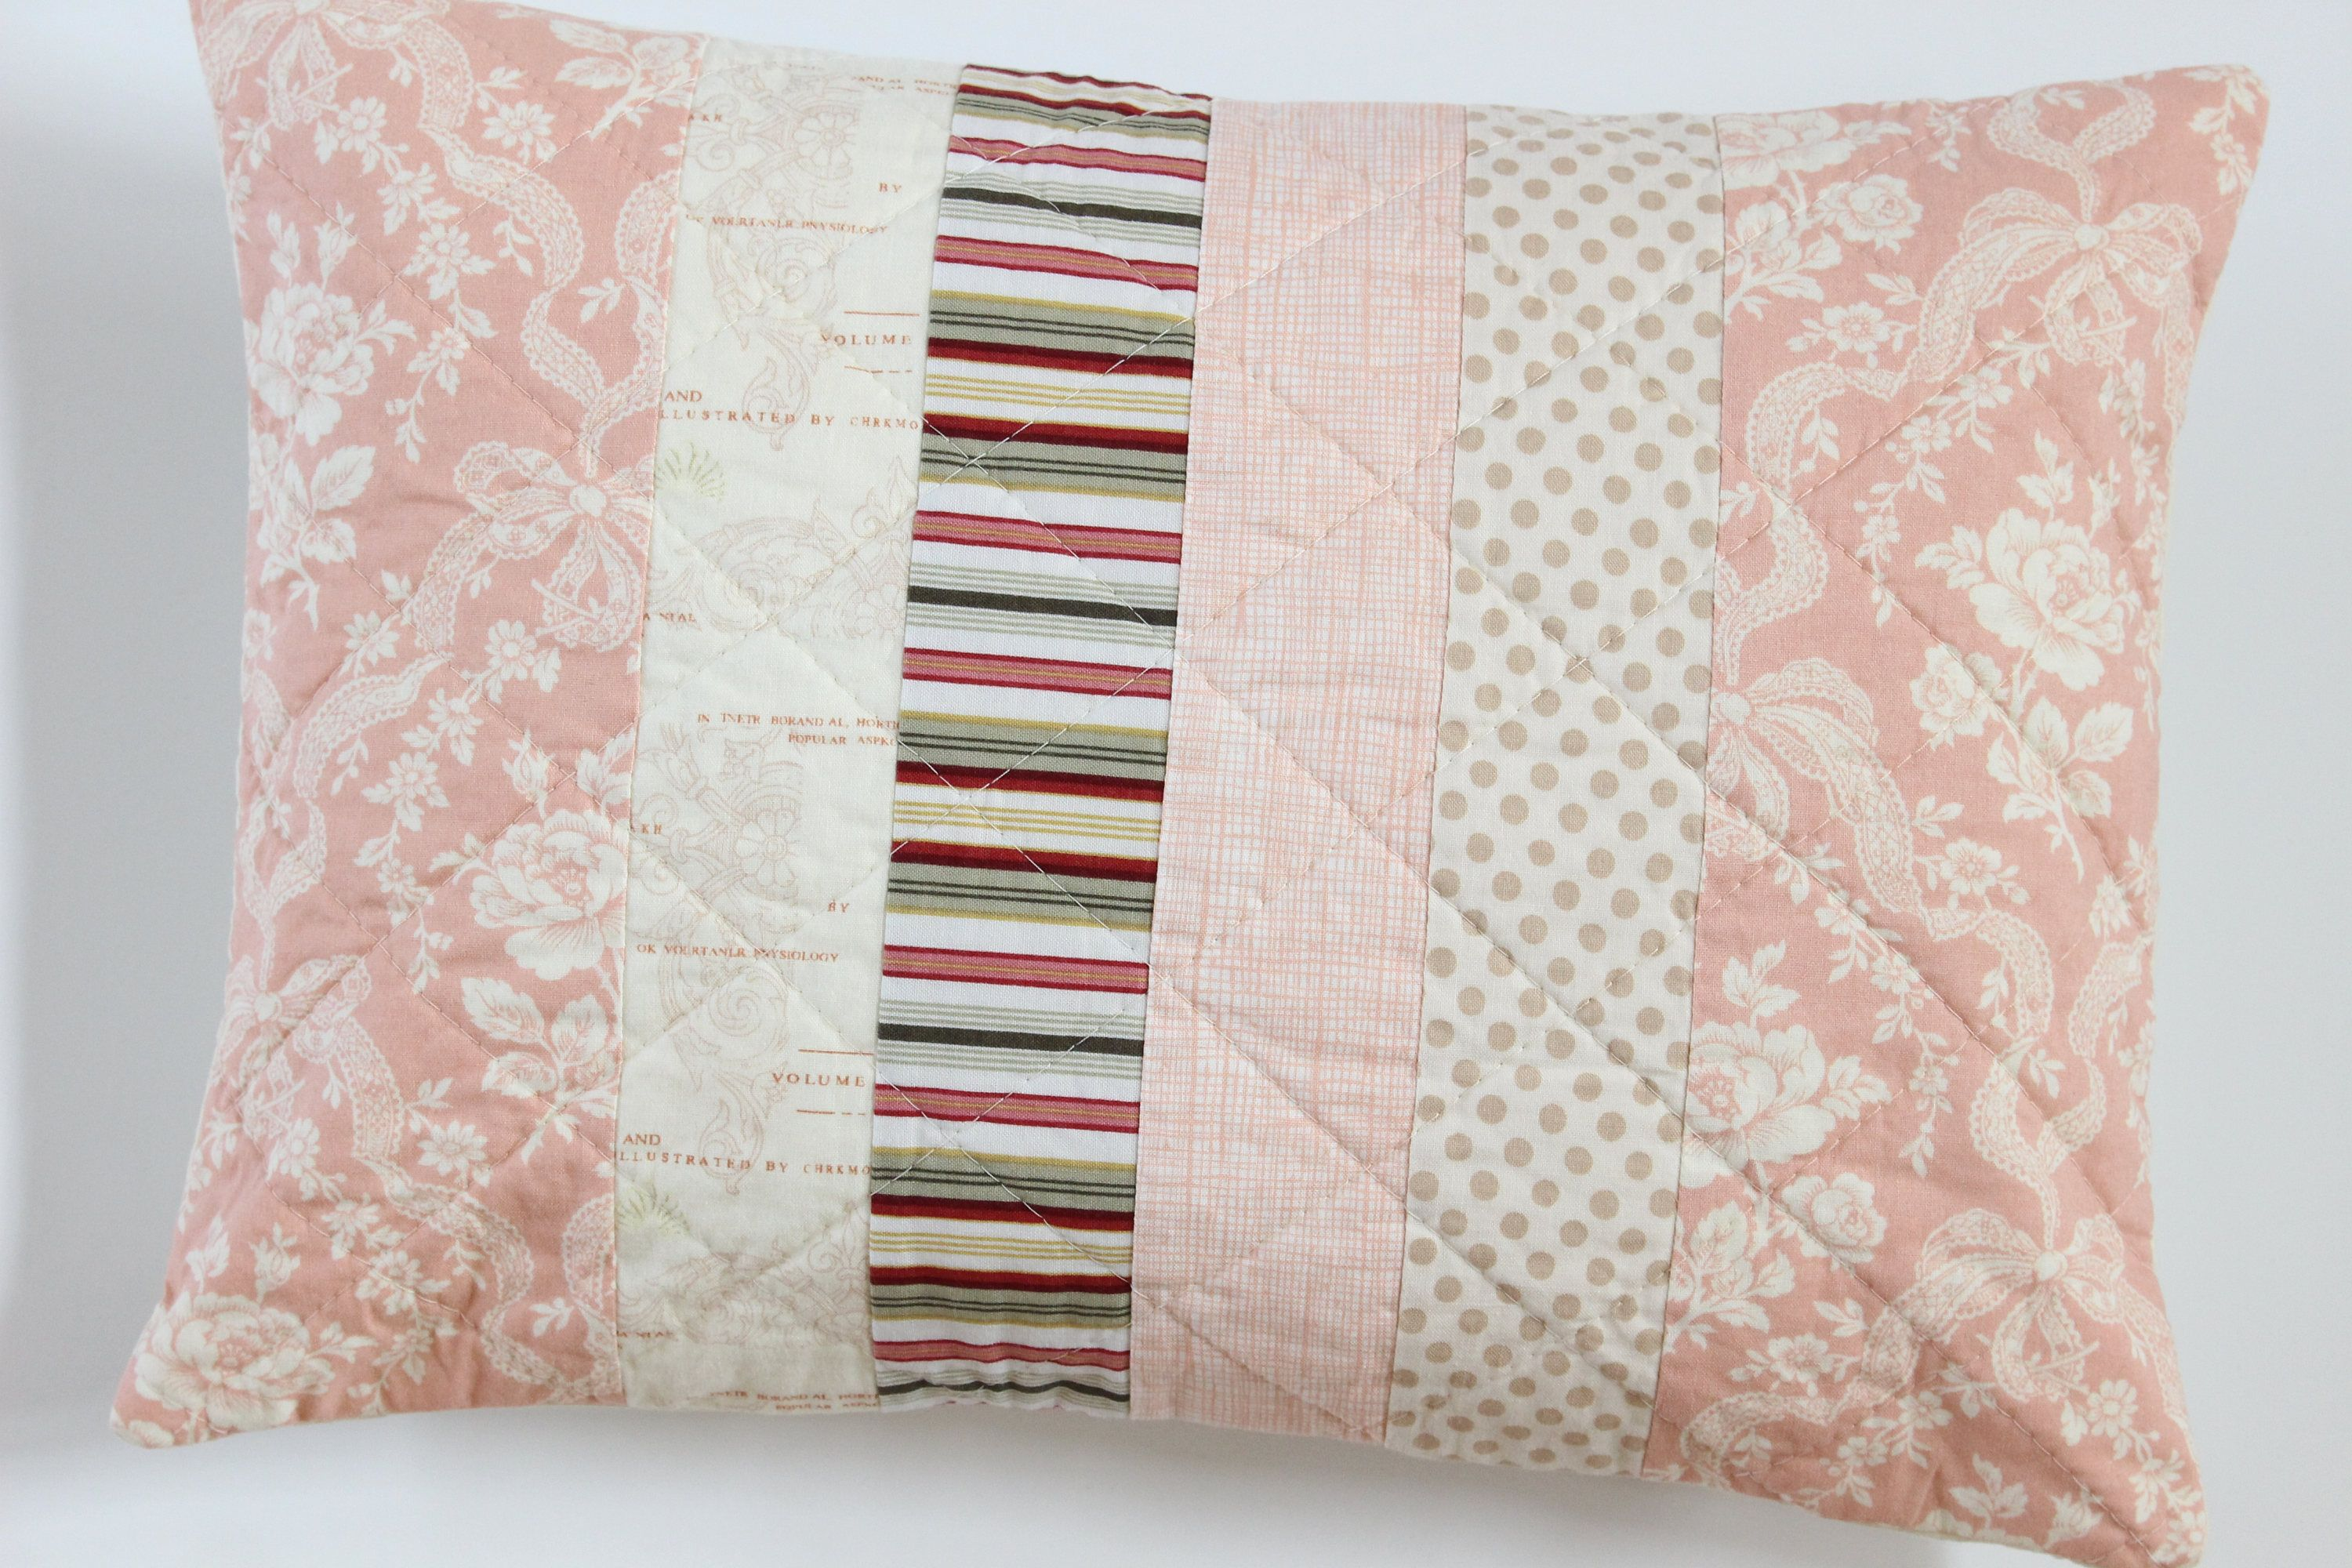 table chic pillows coffe rectangle cotton foam square cover lamp brown vintage soft pink grey white uk pillow wooden wood fabric mattress furniture shabby shade bedroom latex